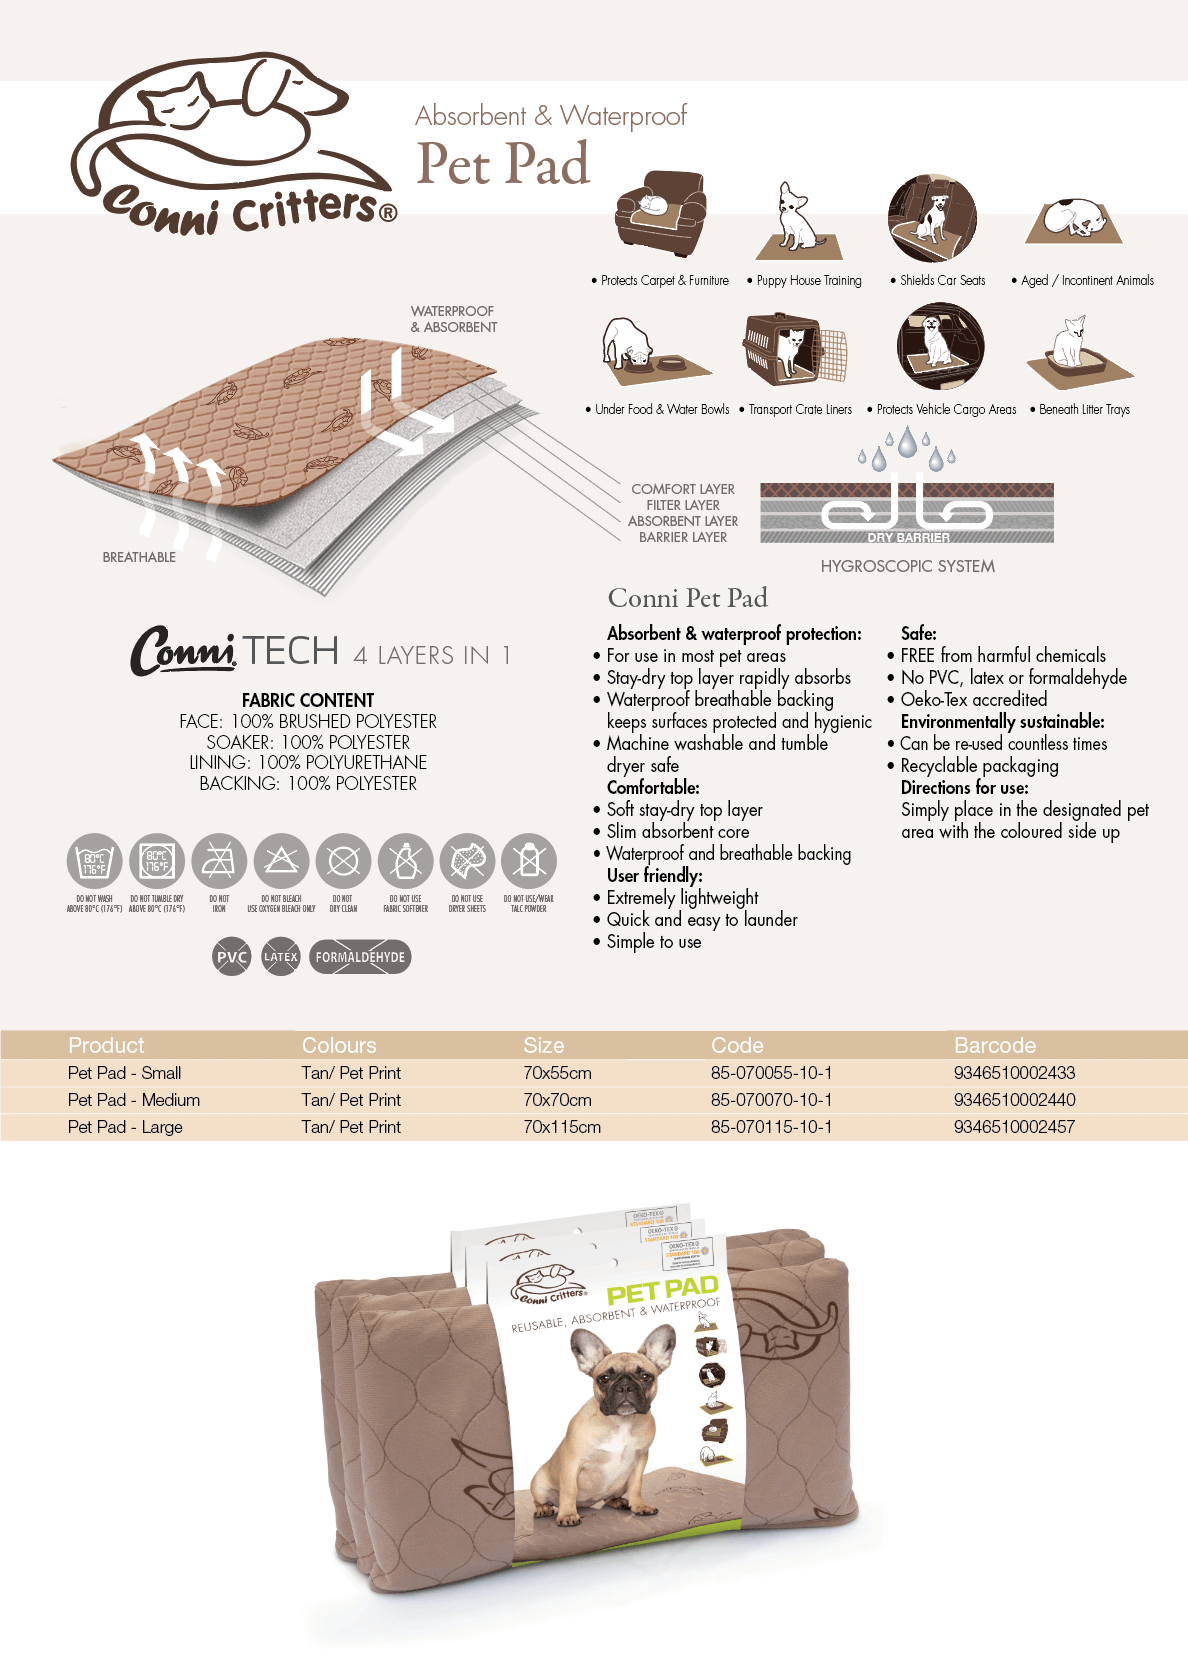 Conni Pet Pad specifications download